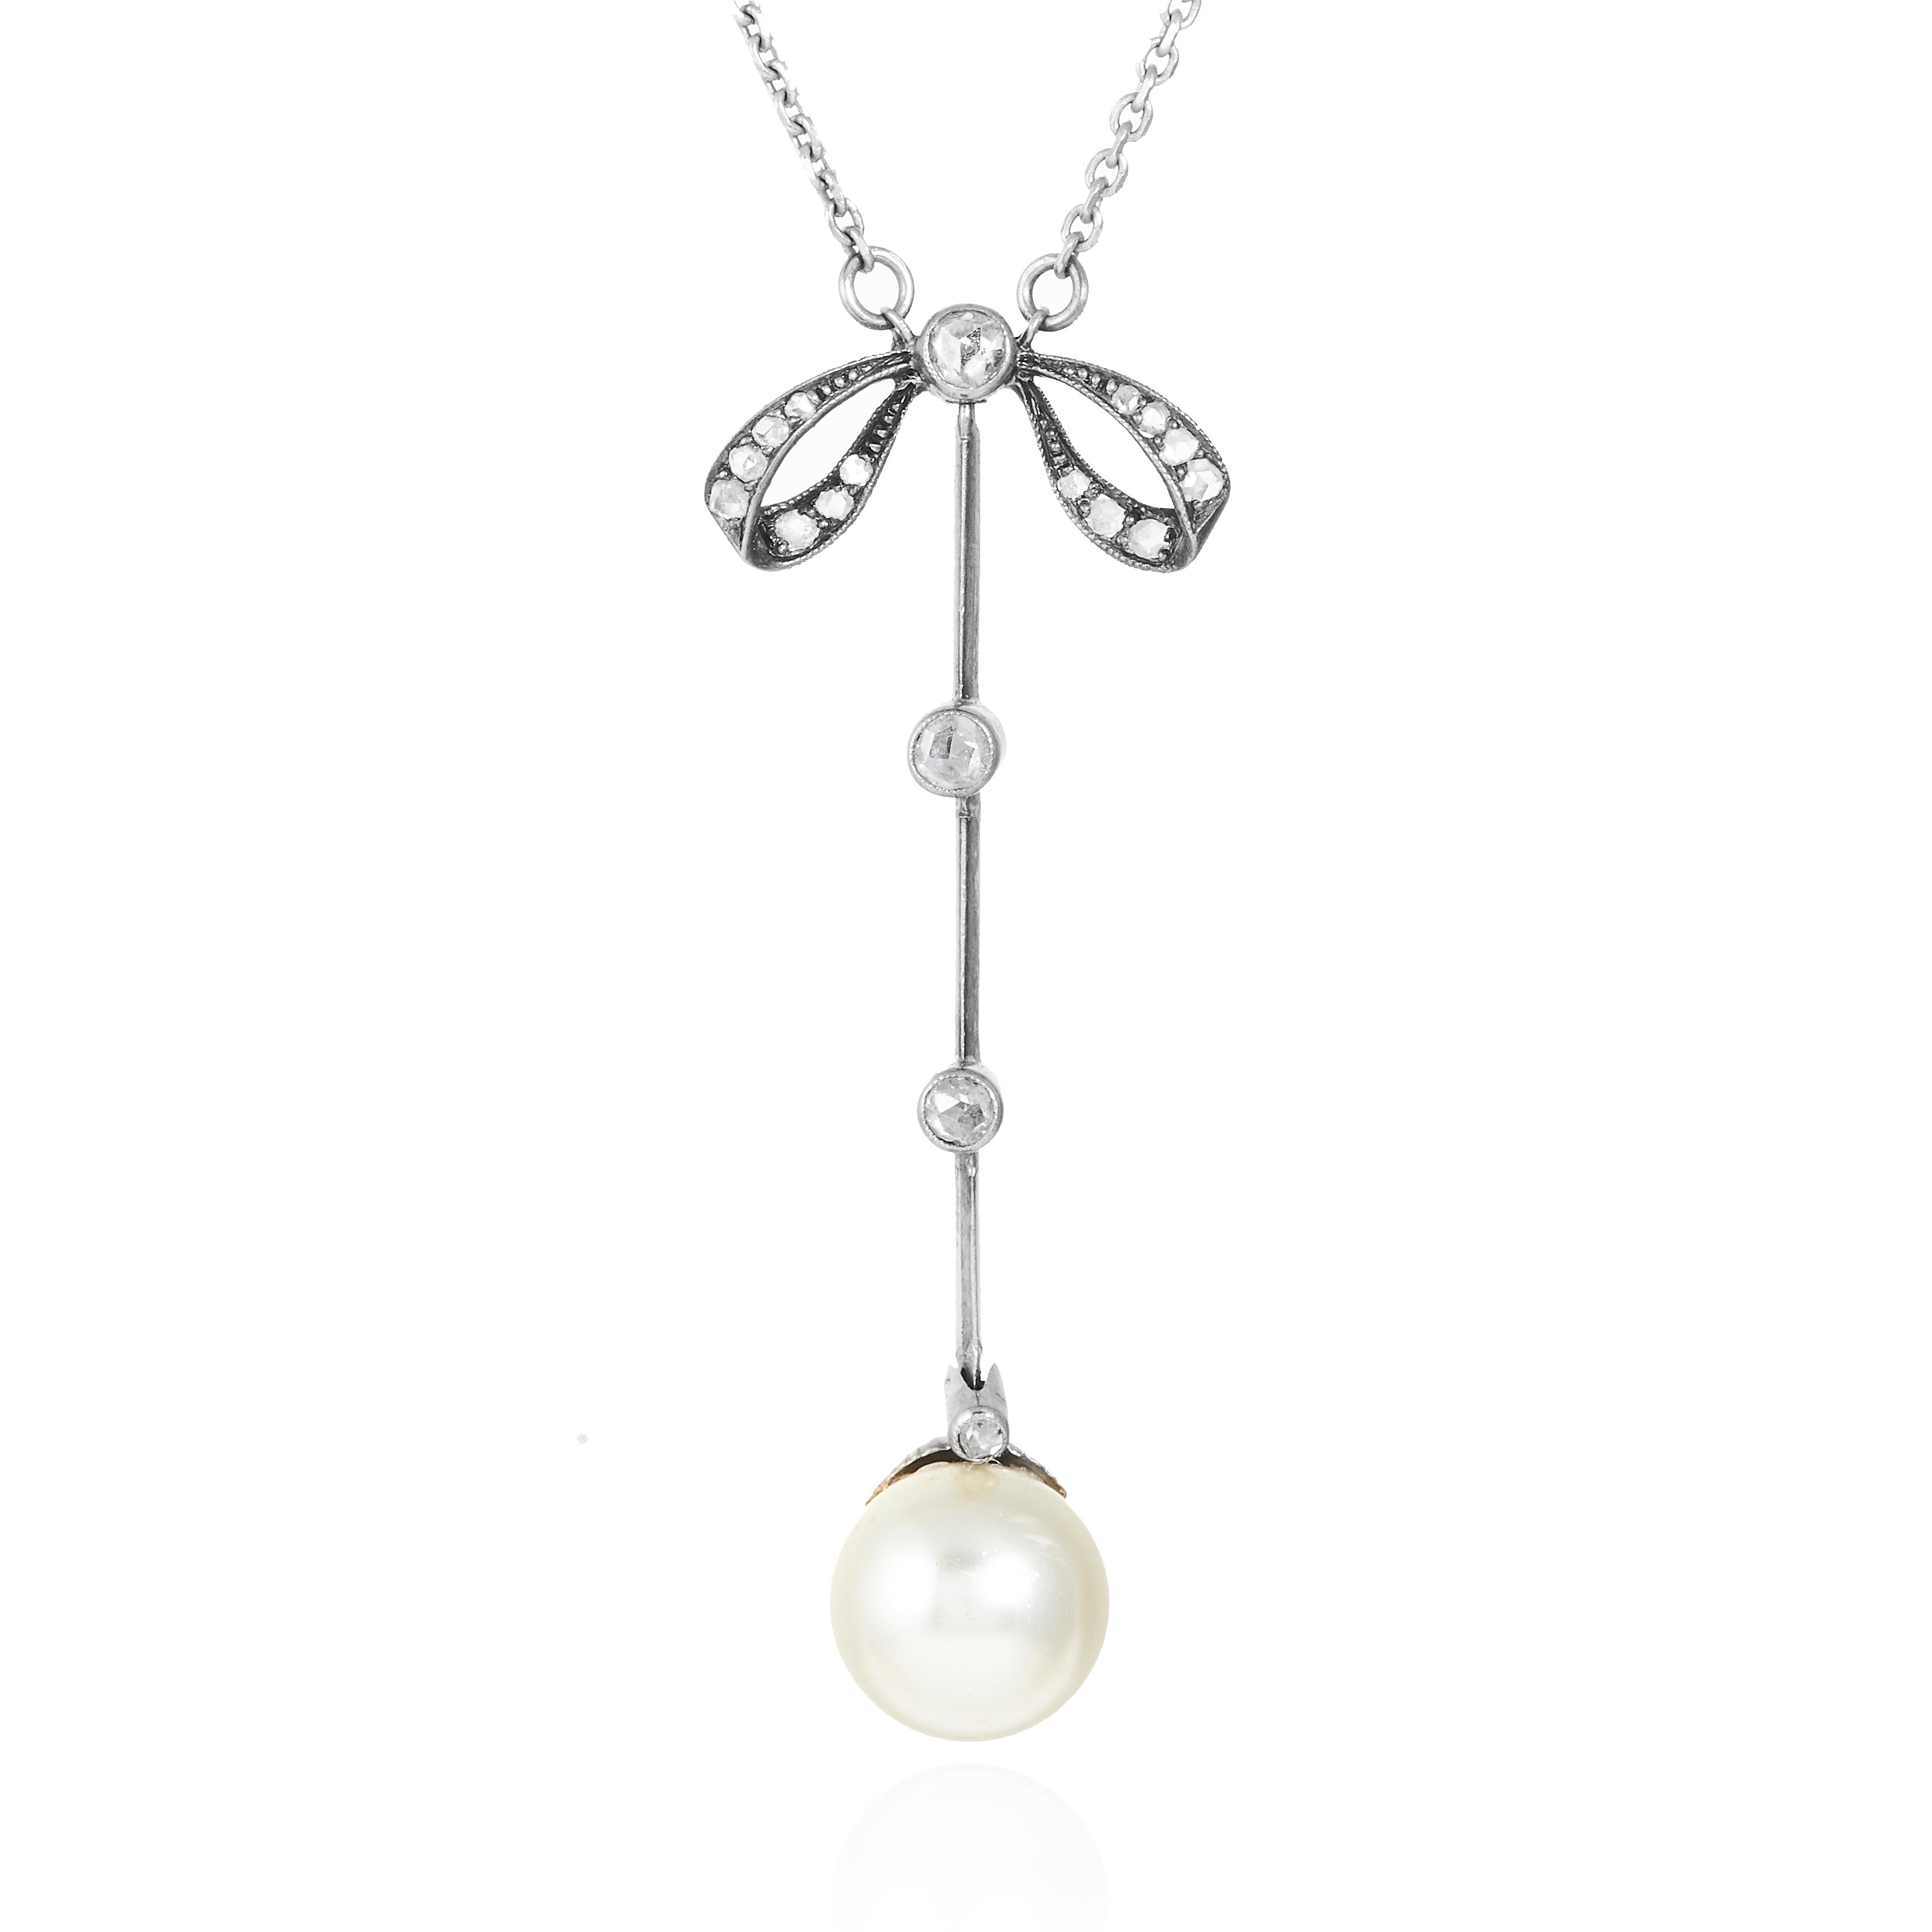 Los 25 - AN ANTIQUE PEARL AND DIAMOND NECKLACE the 9.8mm pearl suspended below a diamond jewelled ribbon